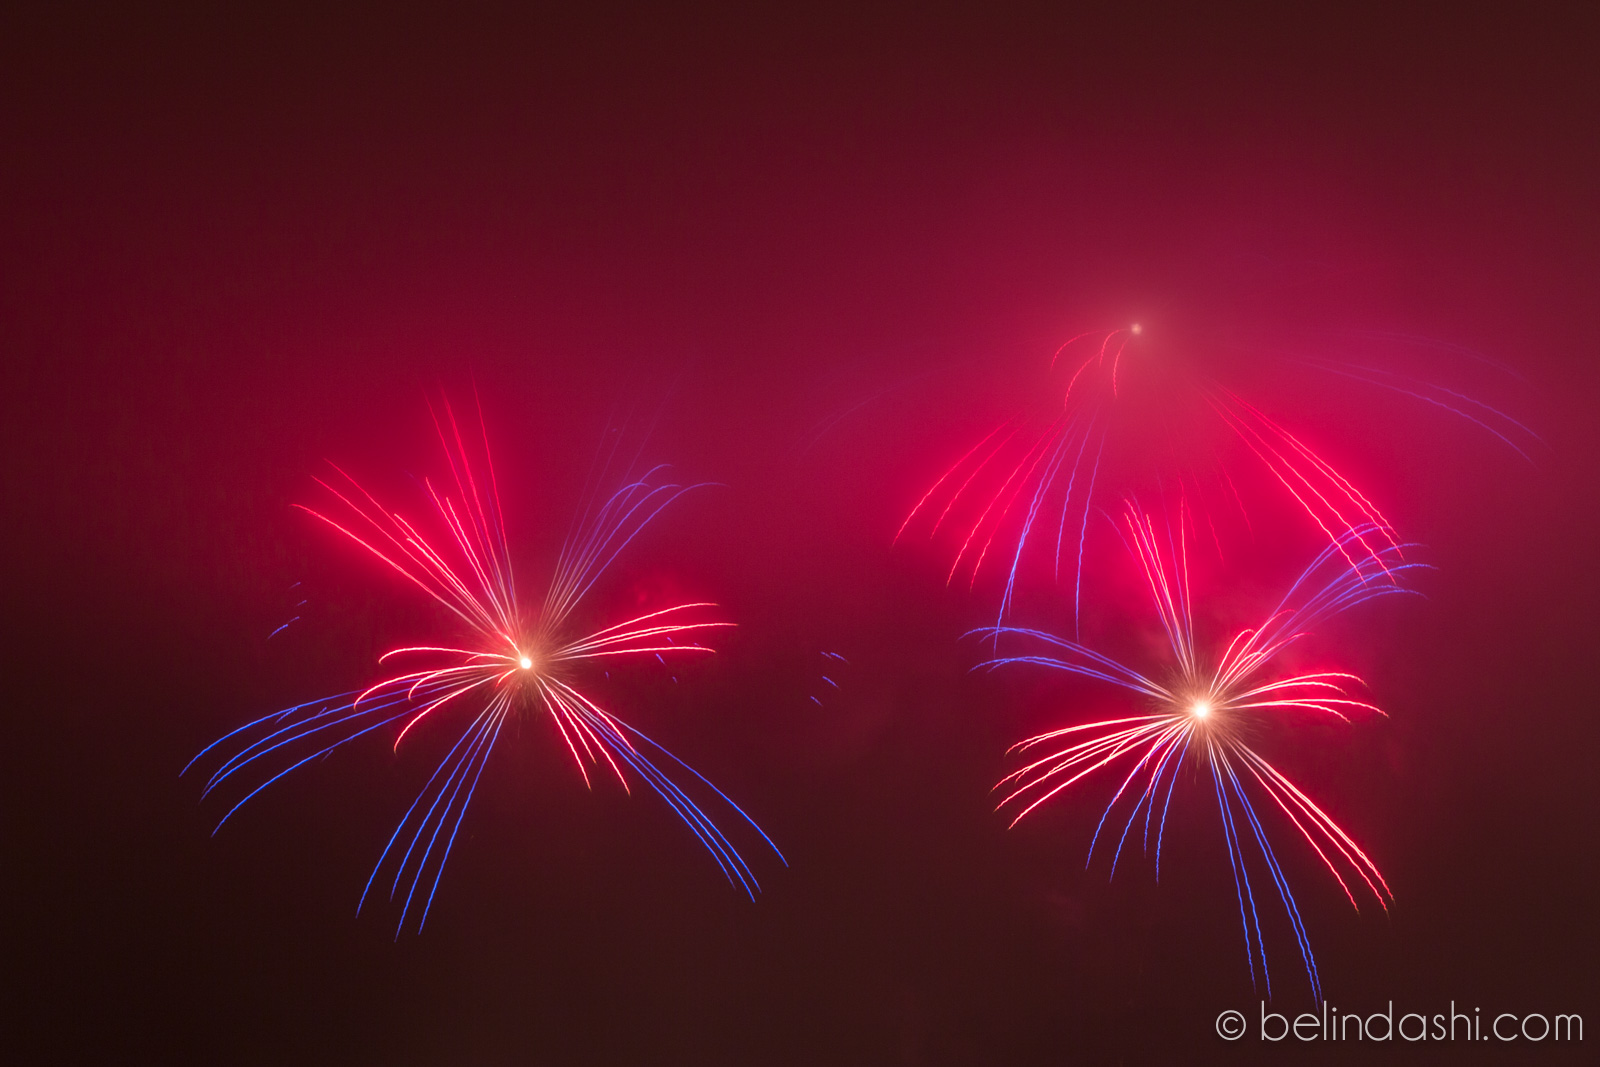 July 4th fireworks in San Francisco 2014-011, ISO200, 148mm, f/9, 8sec